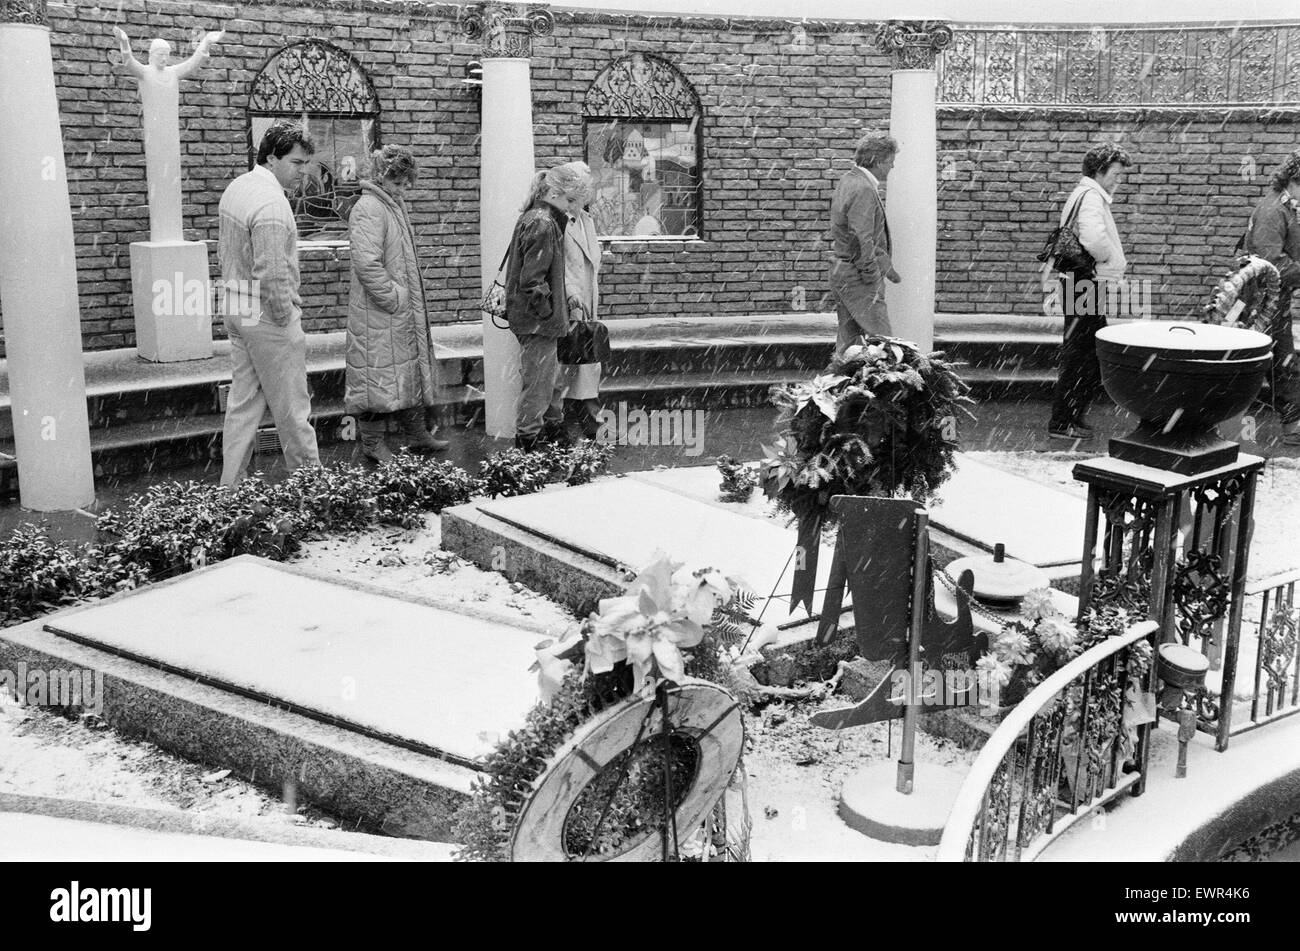 Elvis Presley Grave, Graceland Mansion, Memphis, Tennessee, USA, 4th January 1985. - Stock Image